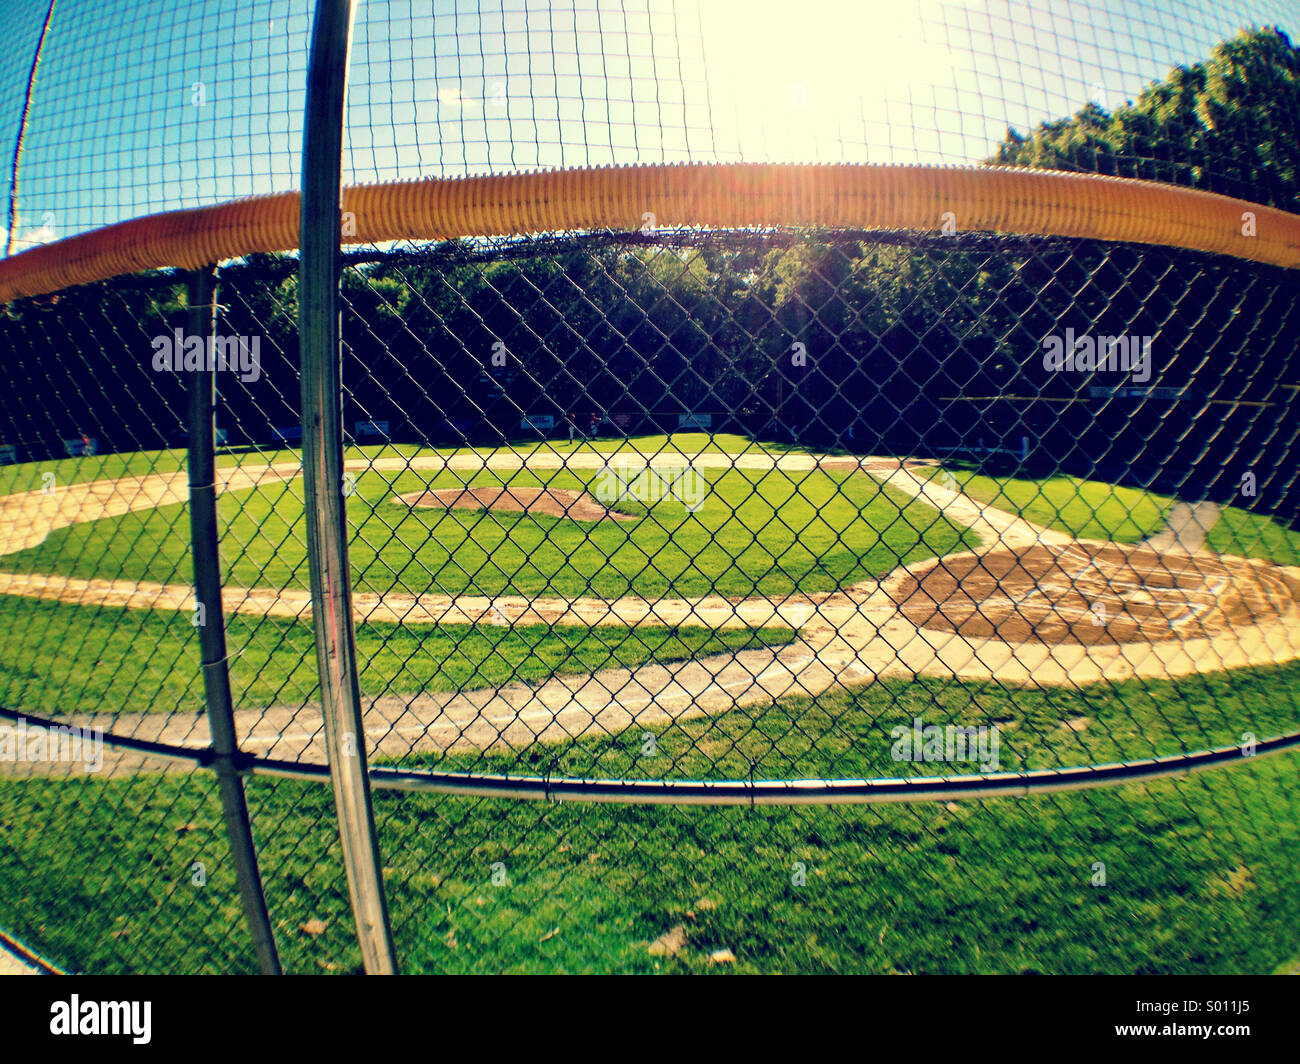 Youth baseball field. - Stock Image